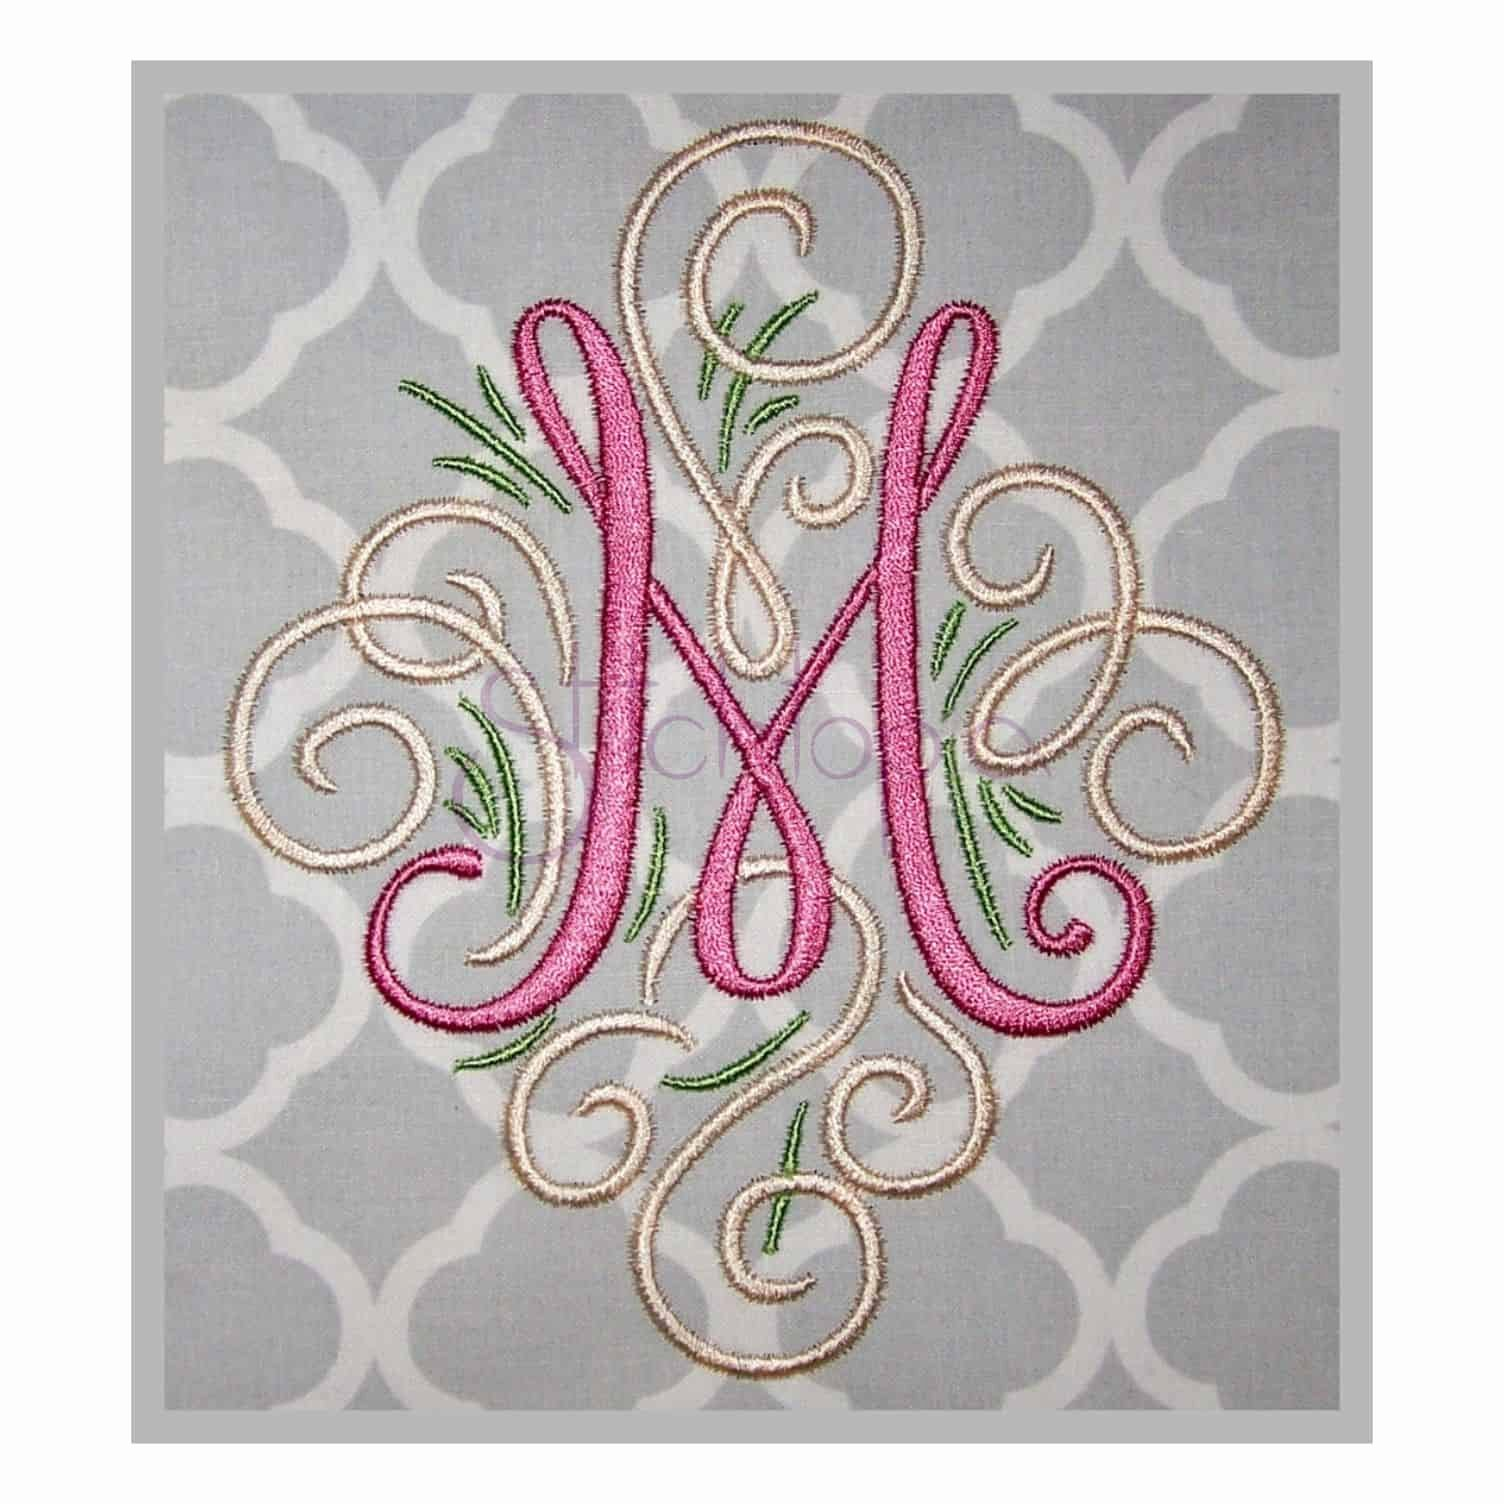 Free Embroidery Monogram Fonts Beautiful Machine Embroidery Font Adorn Monogram